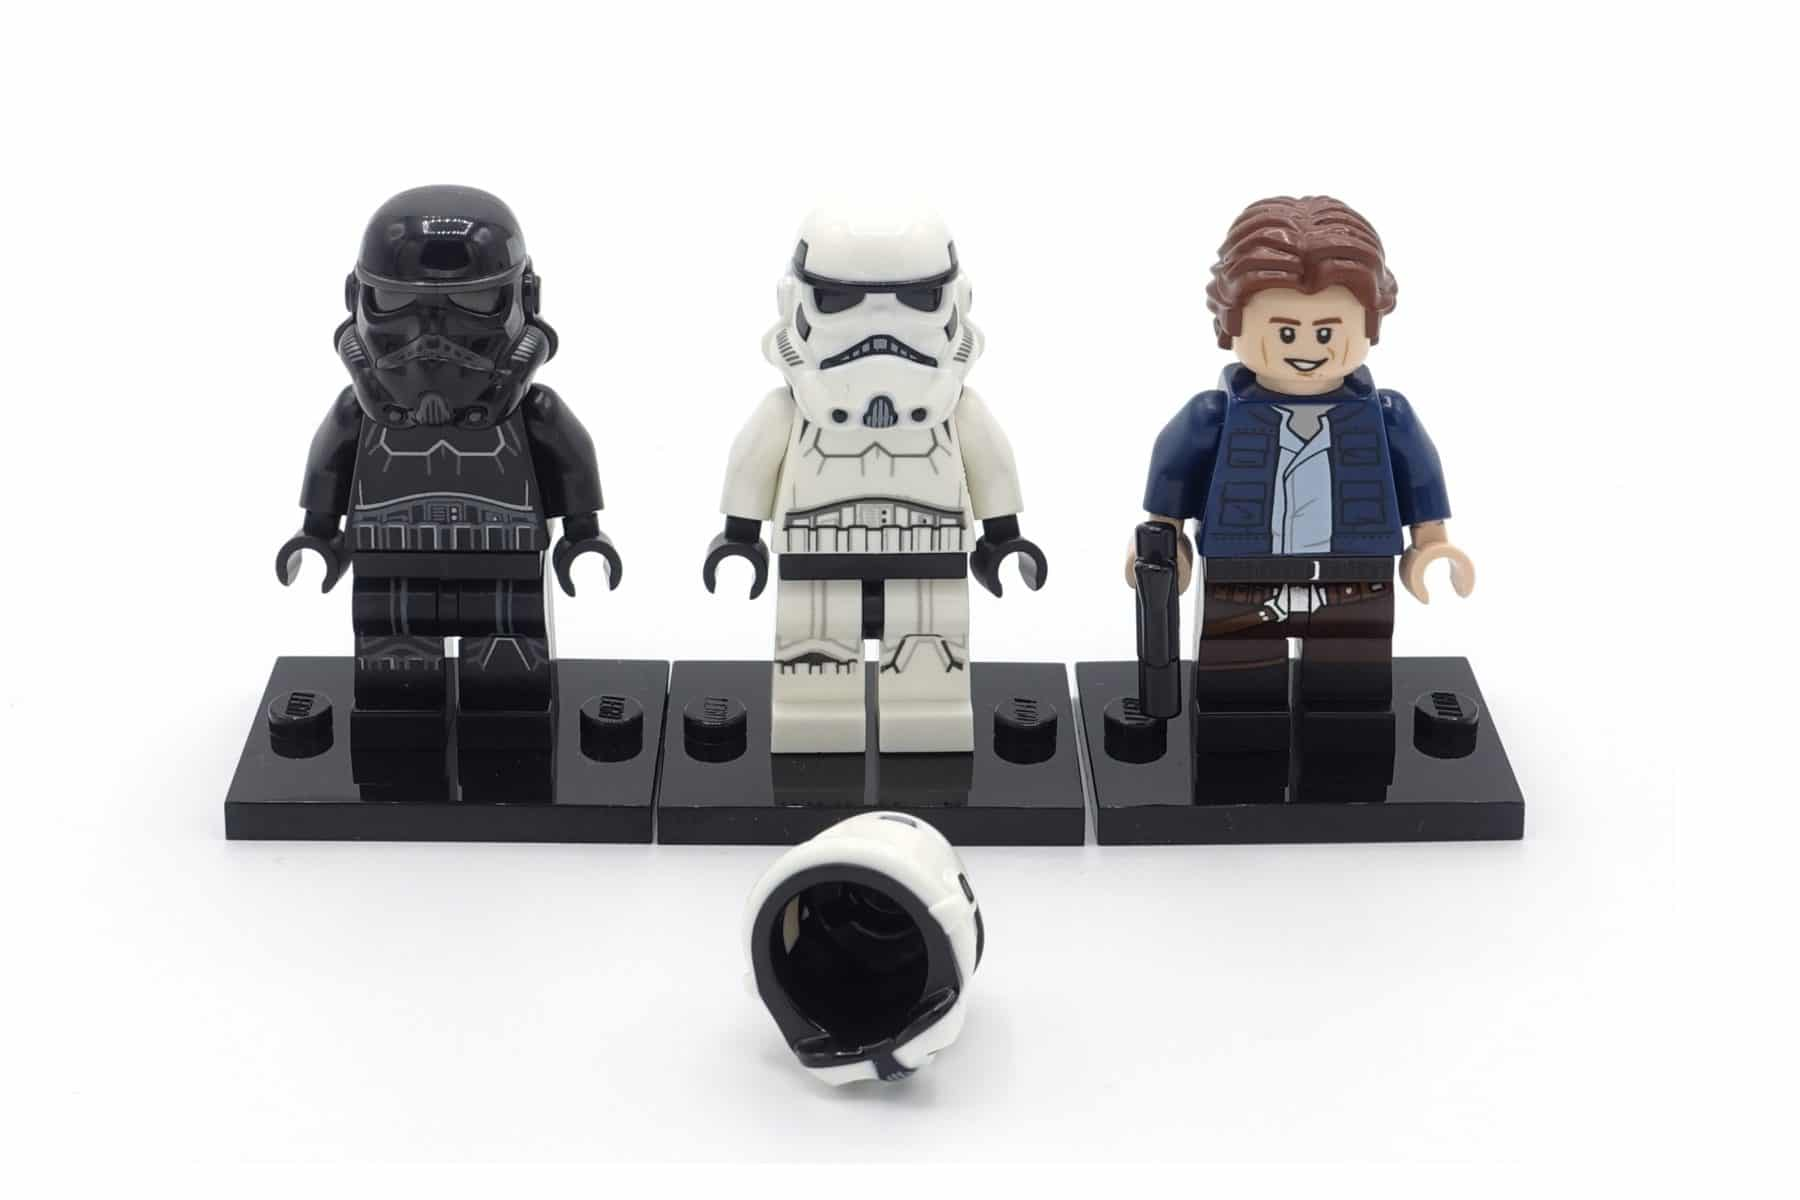 Dual Mold Technik bei LEGO Star Wars Minifiguren